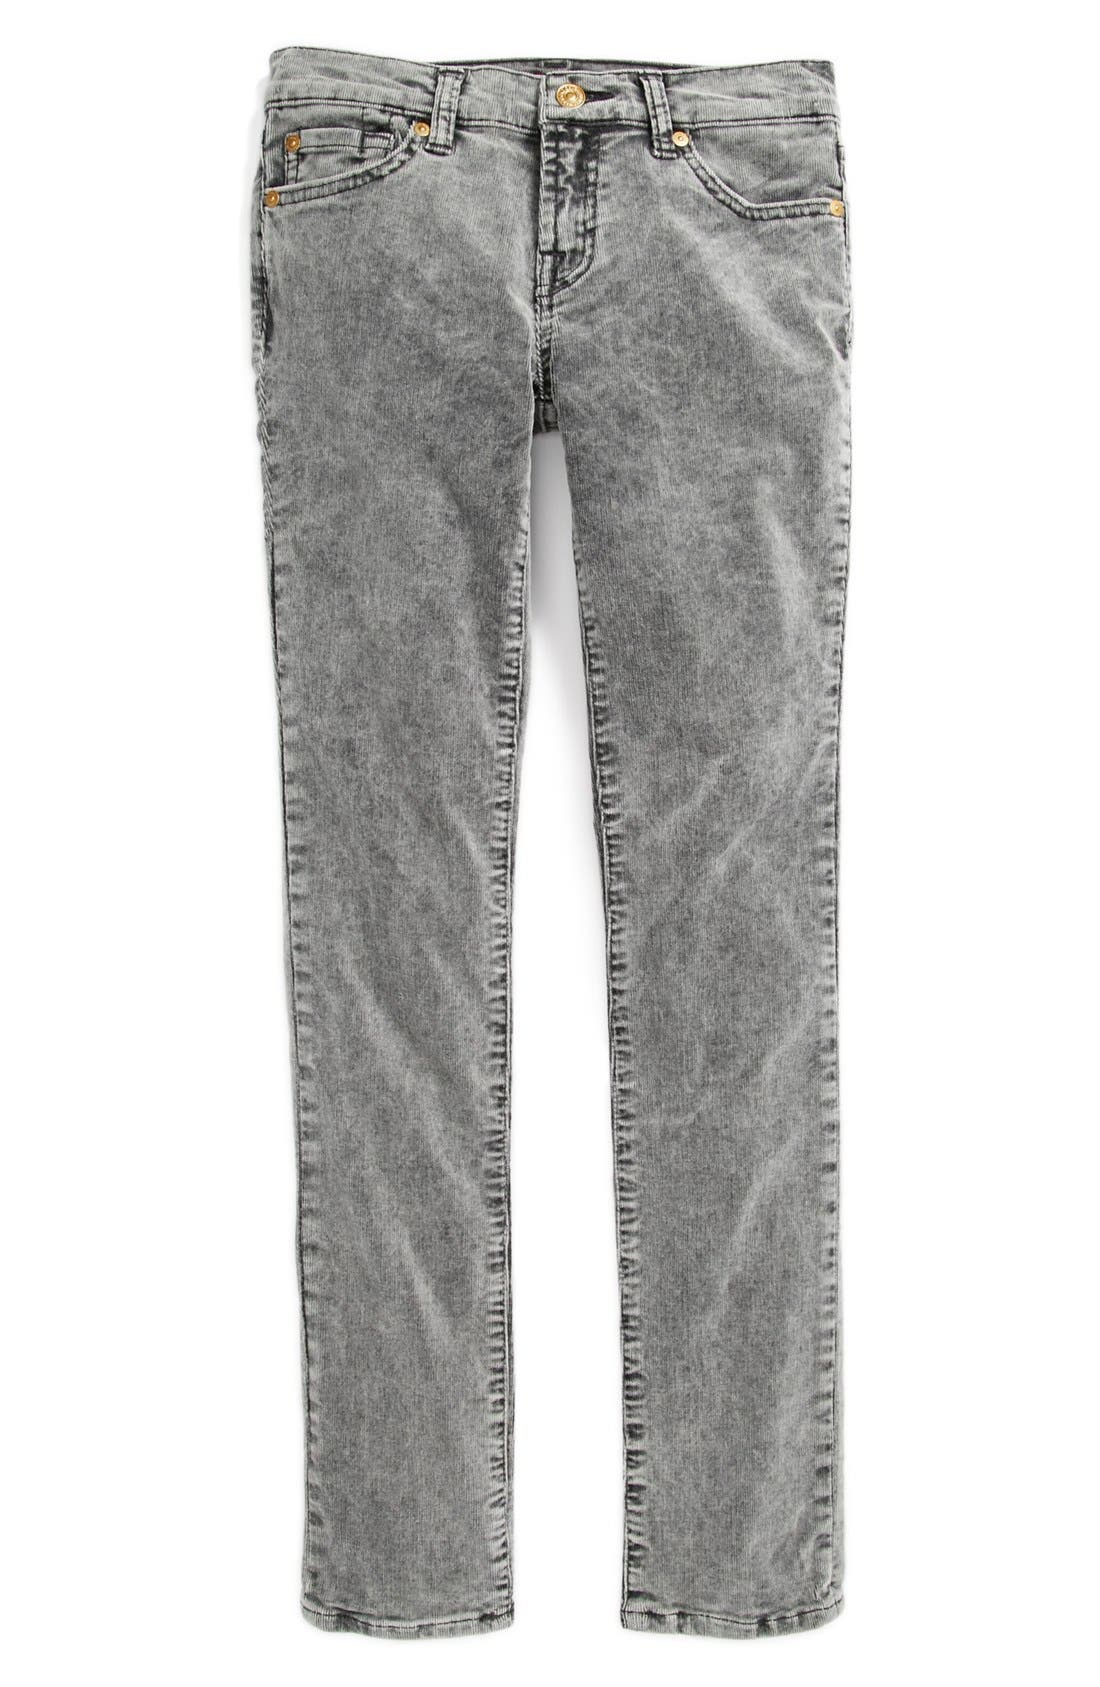 Alternate Image 2  - 7 For All Mankind 'Roxanne' Skinny Corduroys (Big Girls)